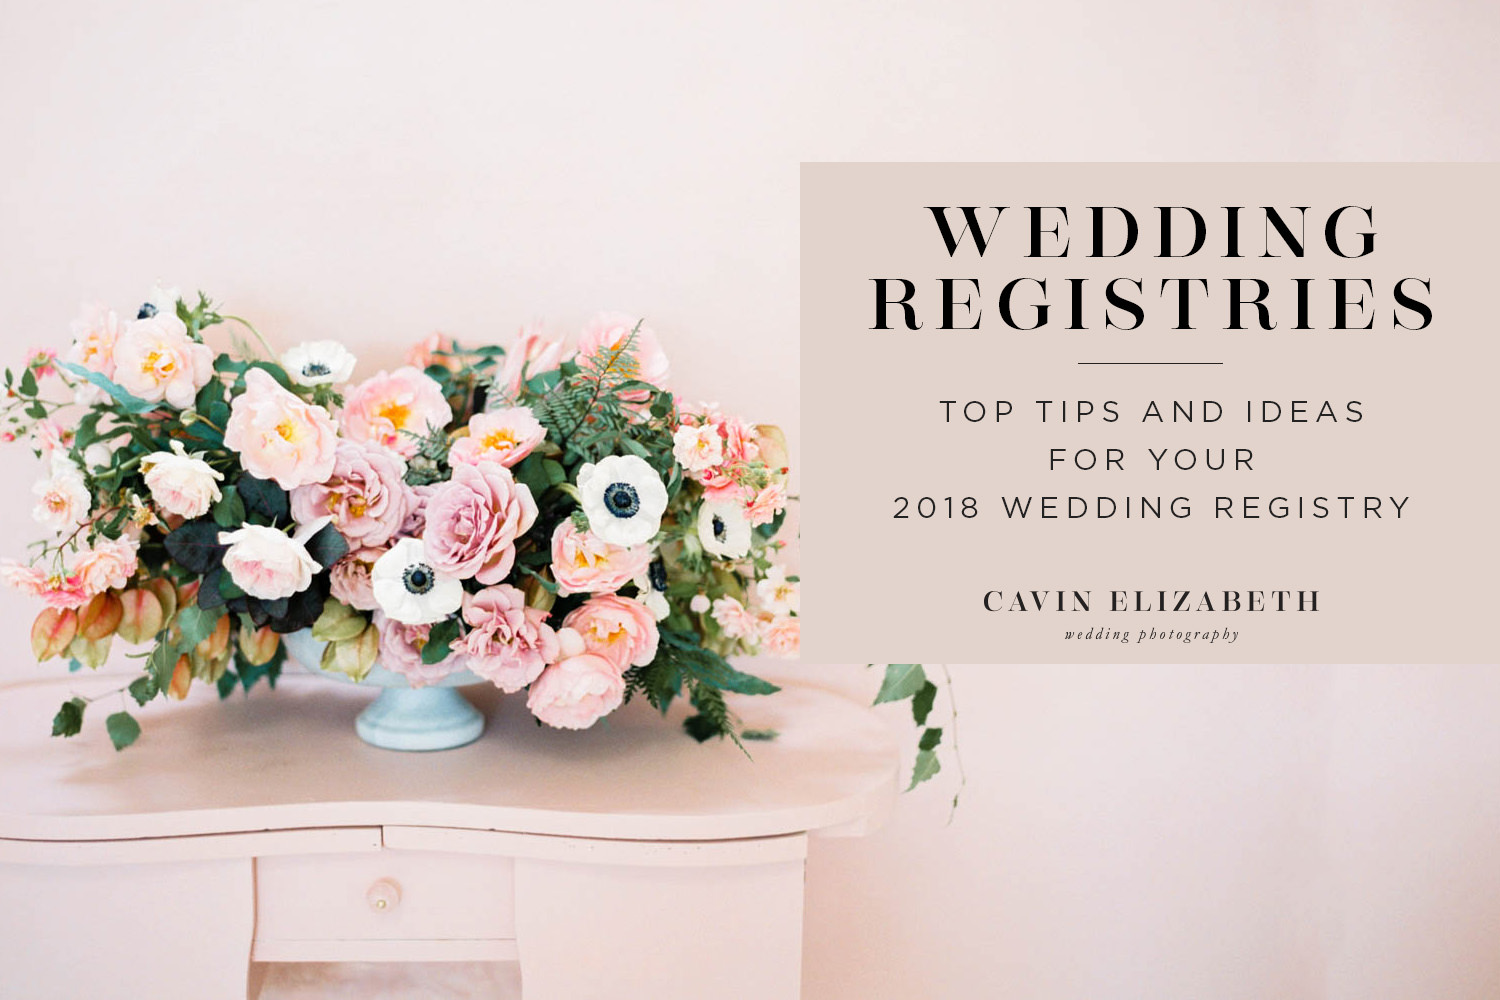 Top wedding registry ideas and tips for 2018 weddings for Popular wedding registry locations